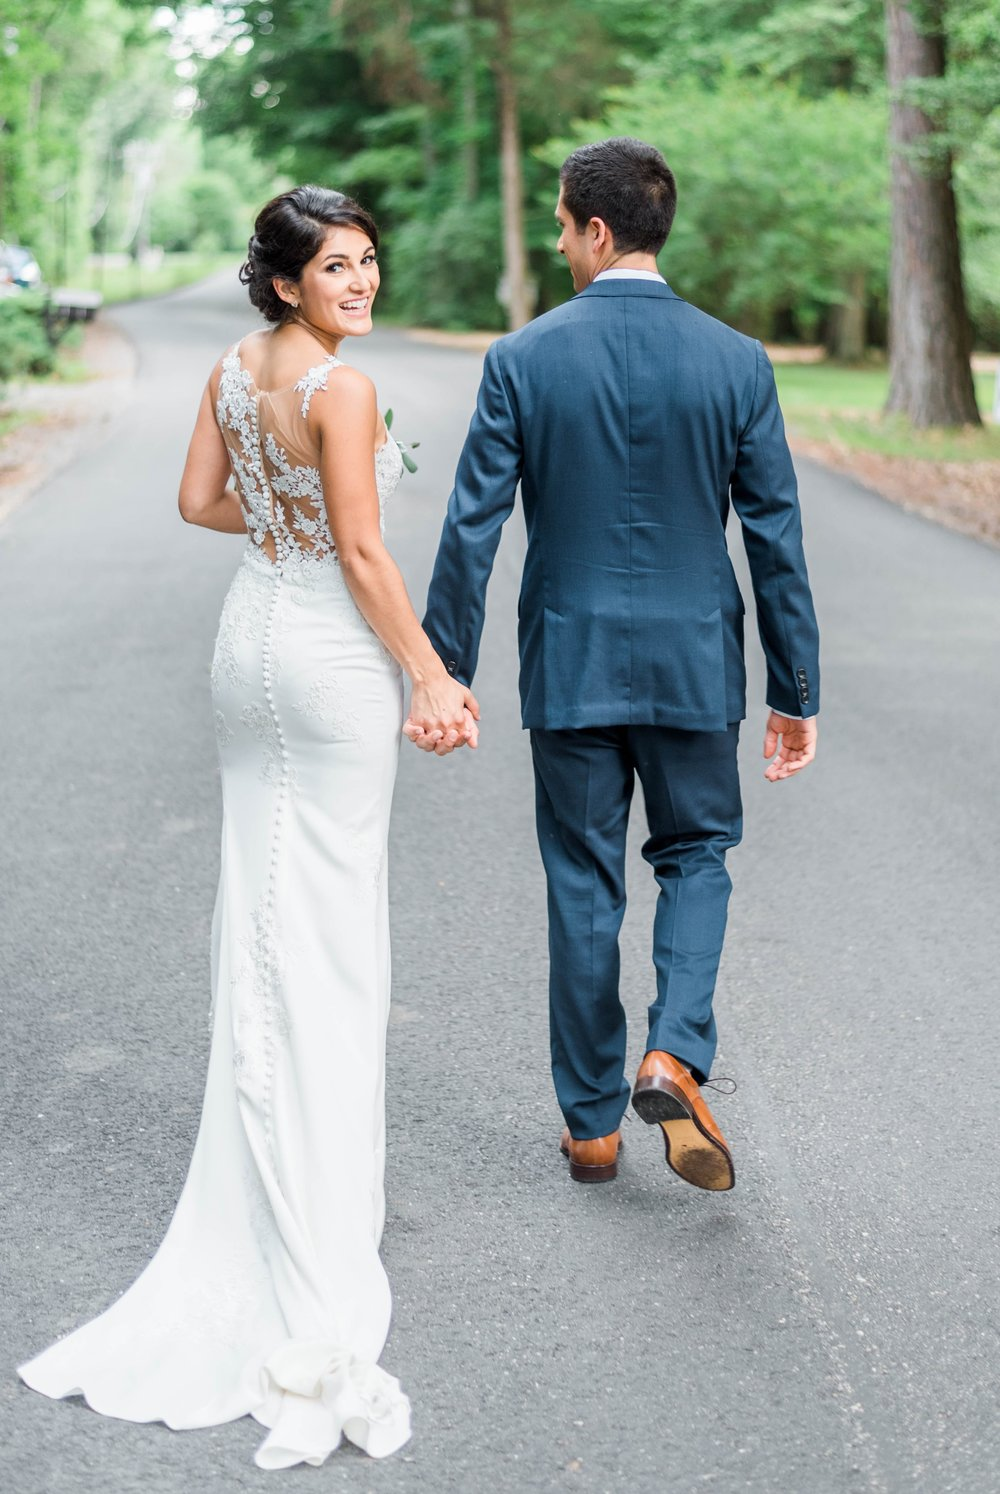 Williamsburgvawedding_backyardwedding_virginiaweddingphotographer_lynchburgweddingphotographer_PaulAliya 27.jpg